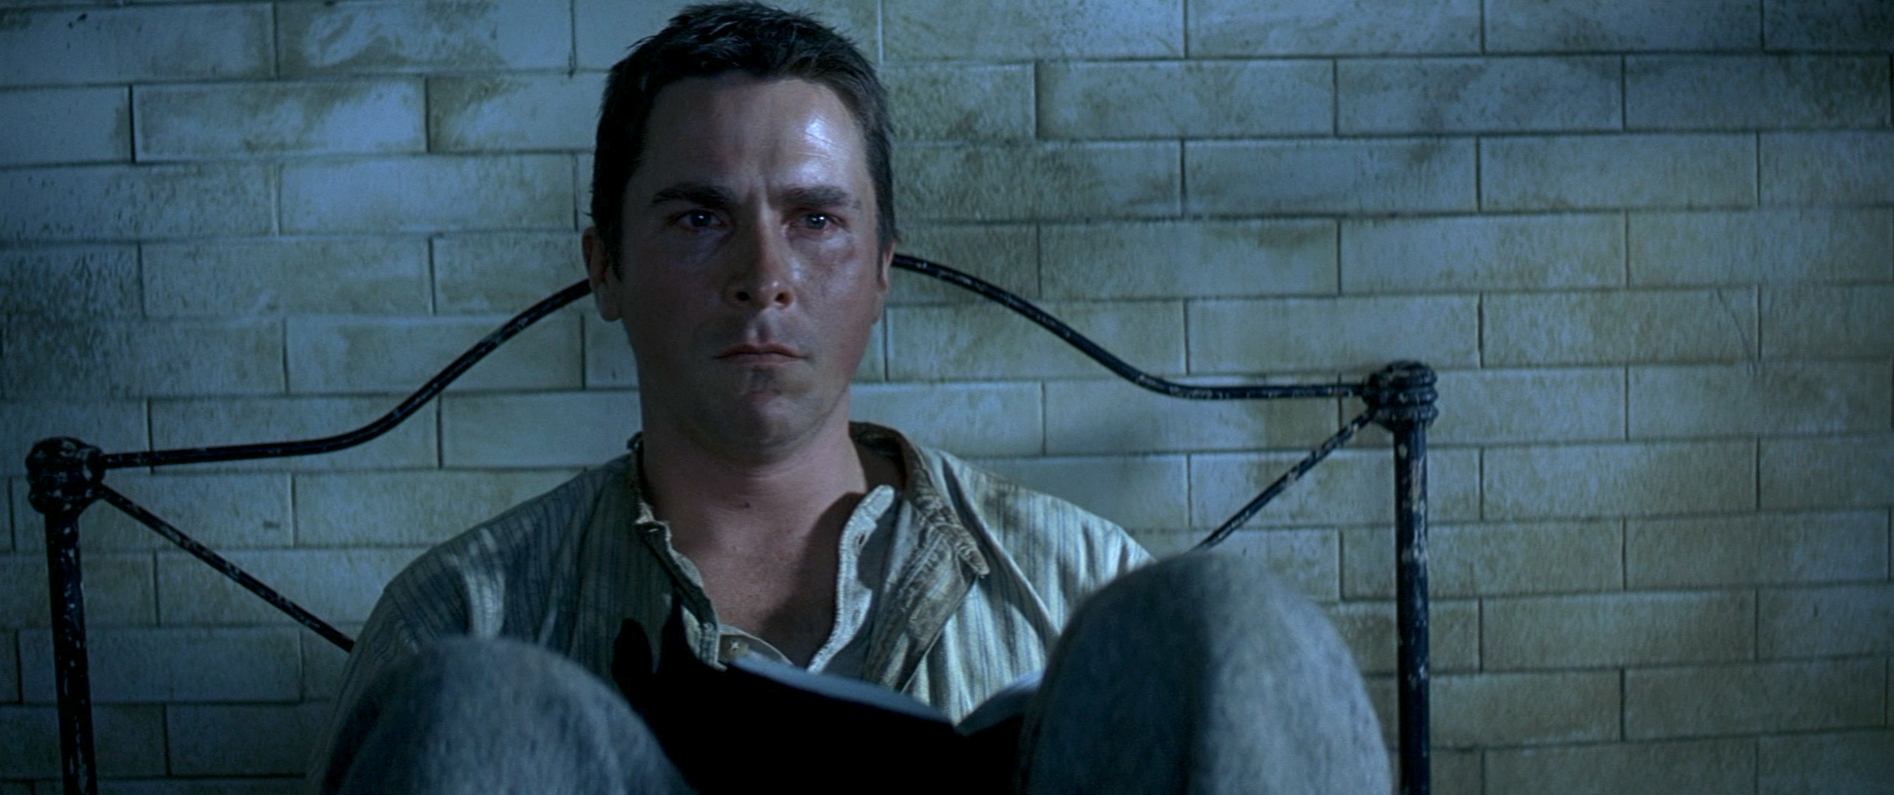 The Prestige: Christian Bale sits in bed feeling weepy